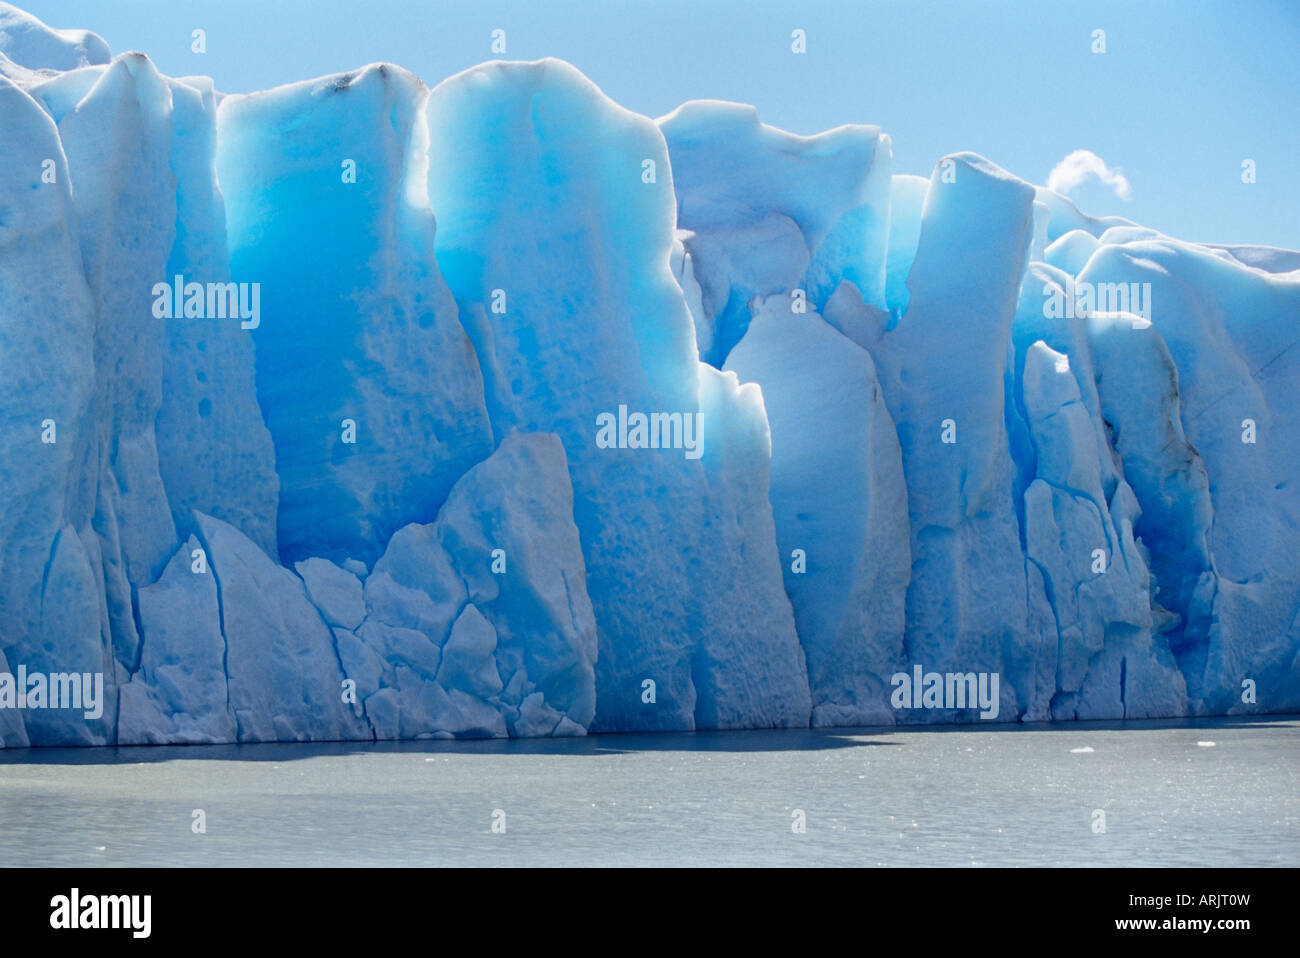 Icebergs, Lake Gray, Torres del Paine National Park, Patagonia, Chile, South America - Stock Image